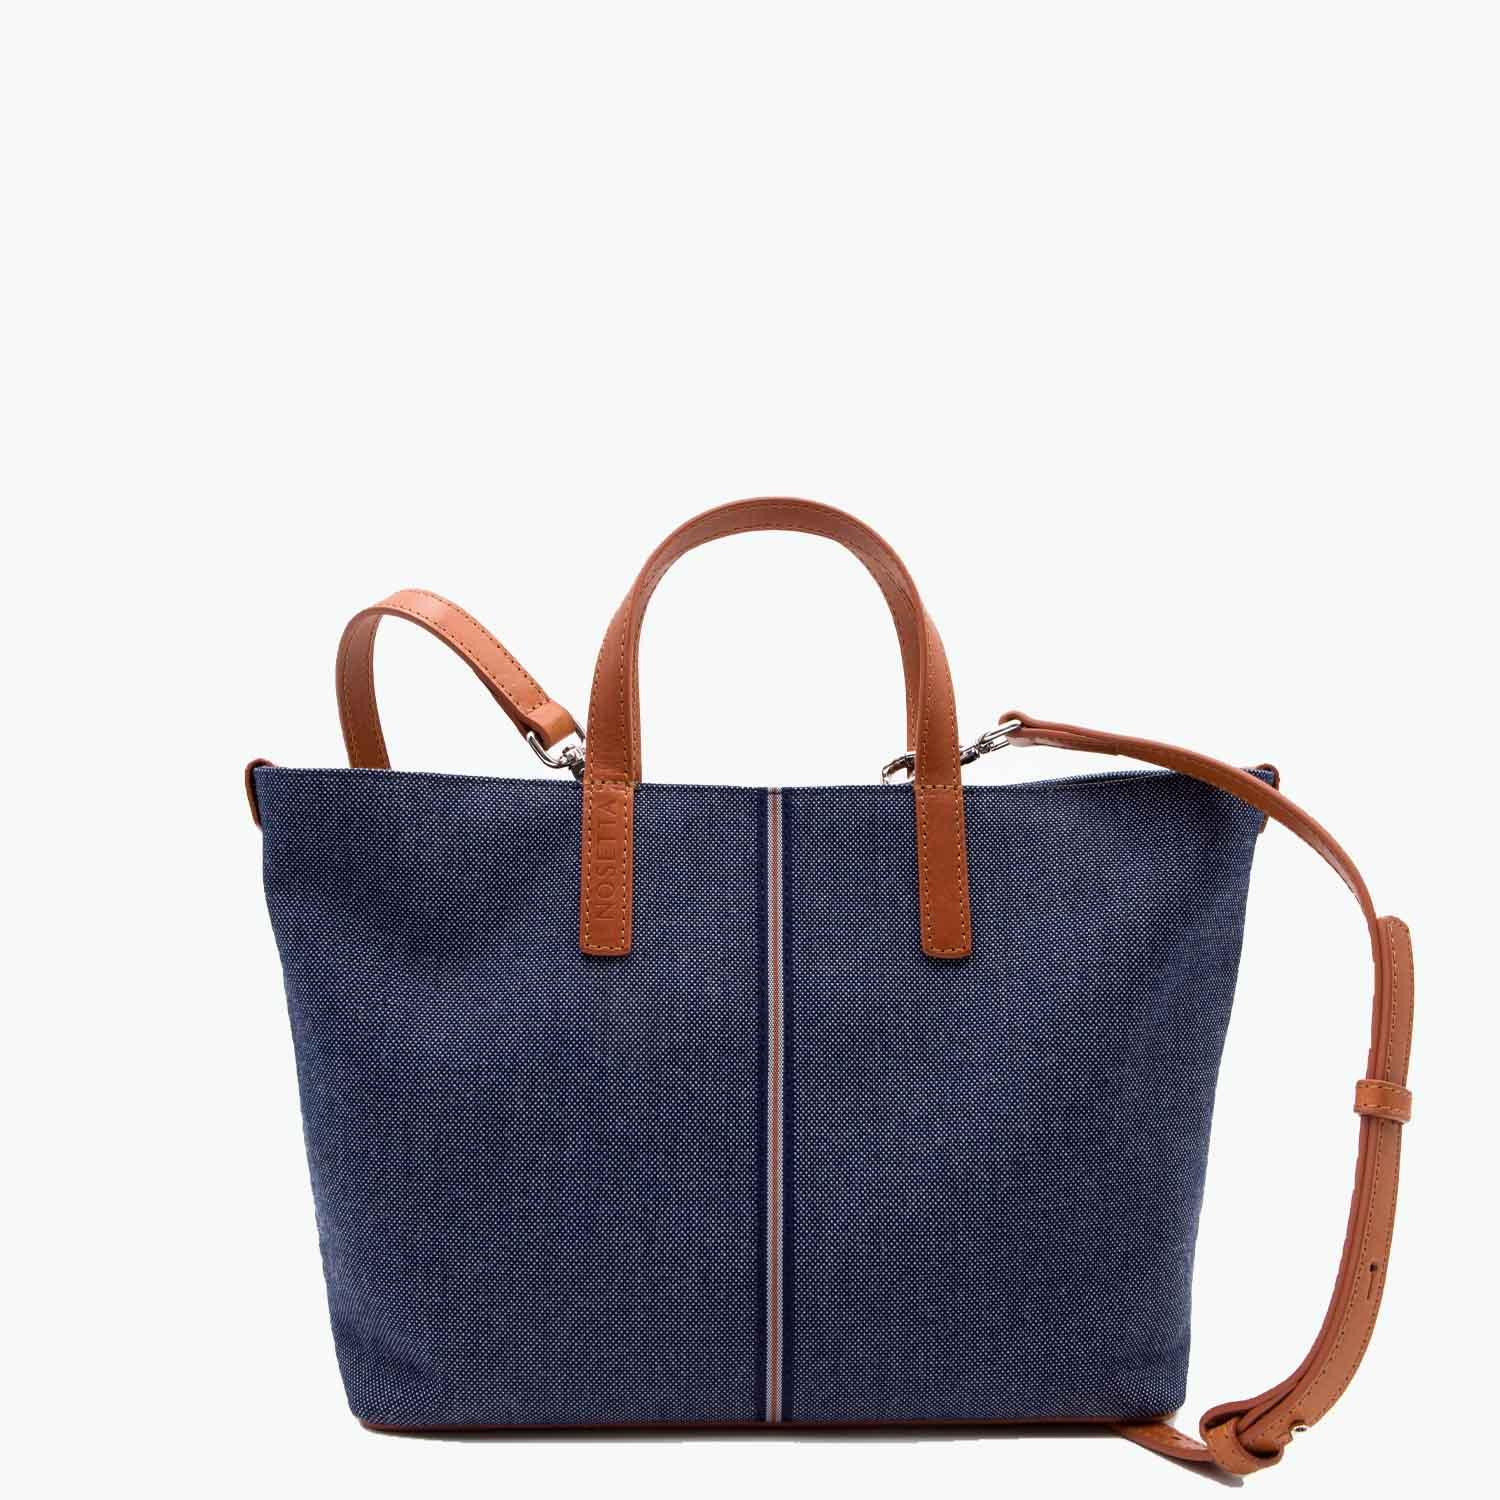 Carlia Small Tote Denim and Leather